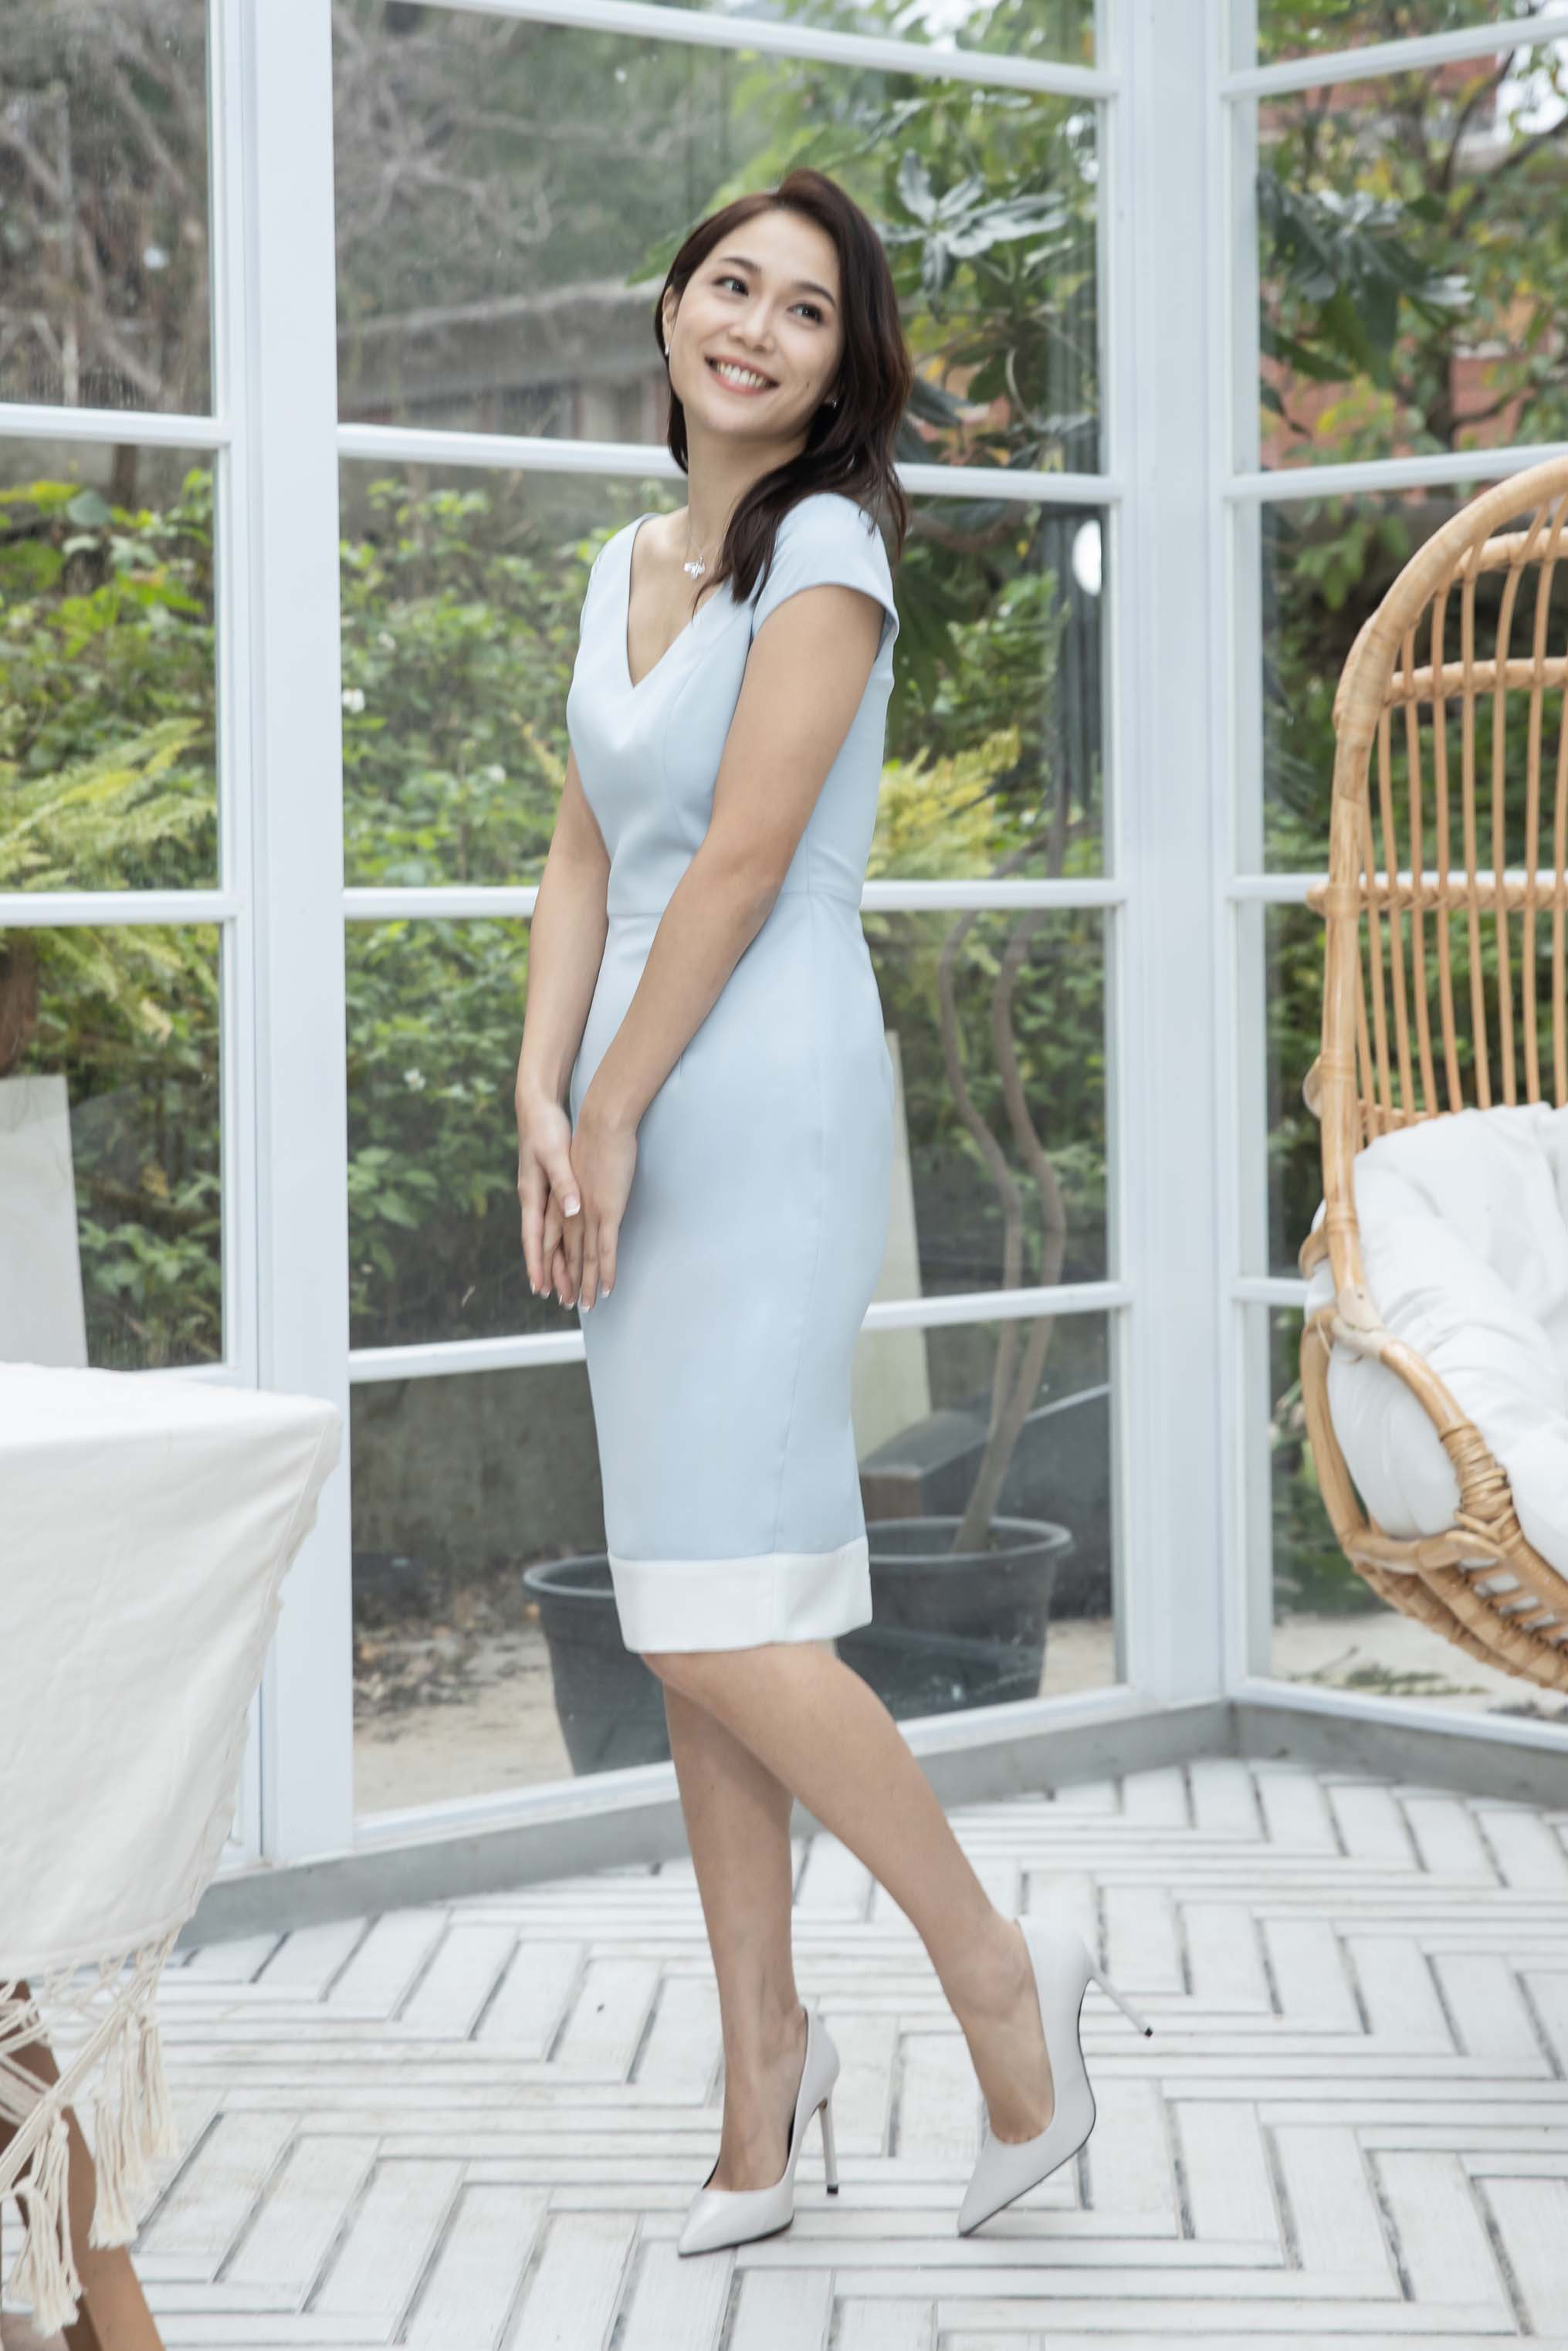 V-shape neckline light blue dress